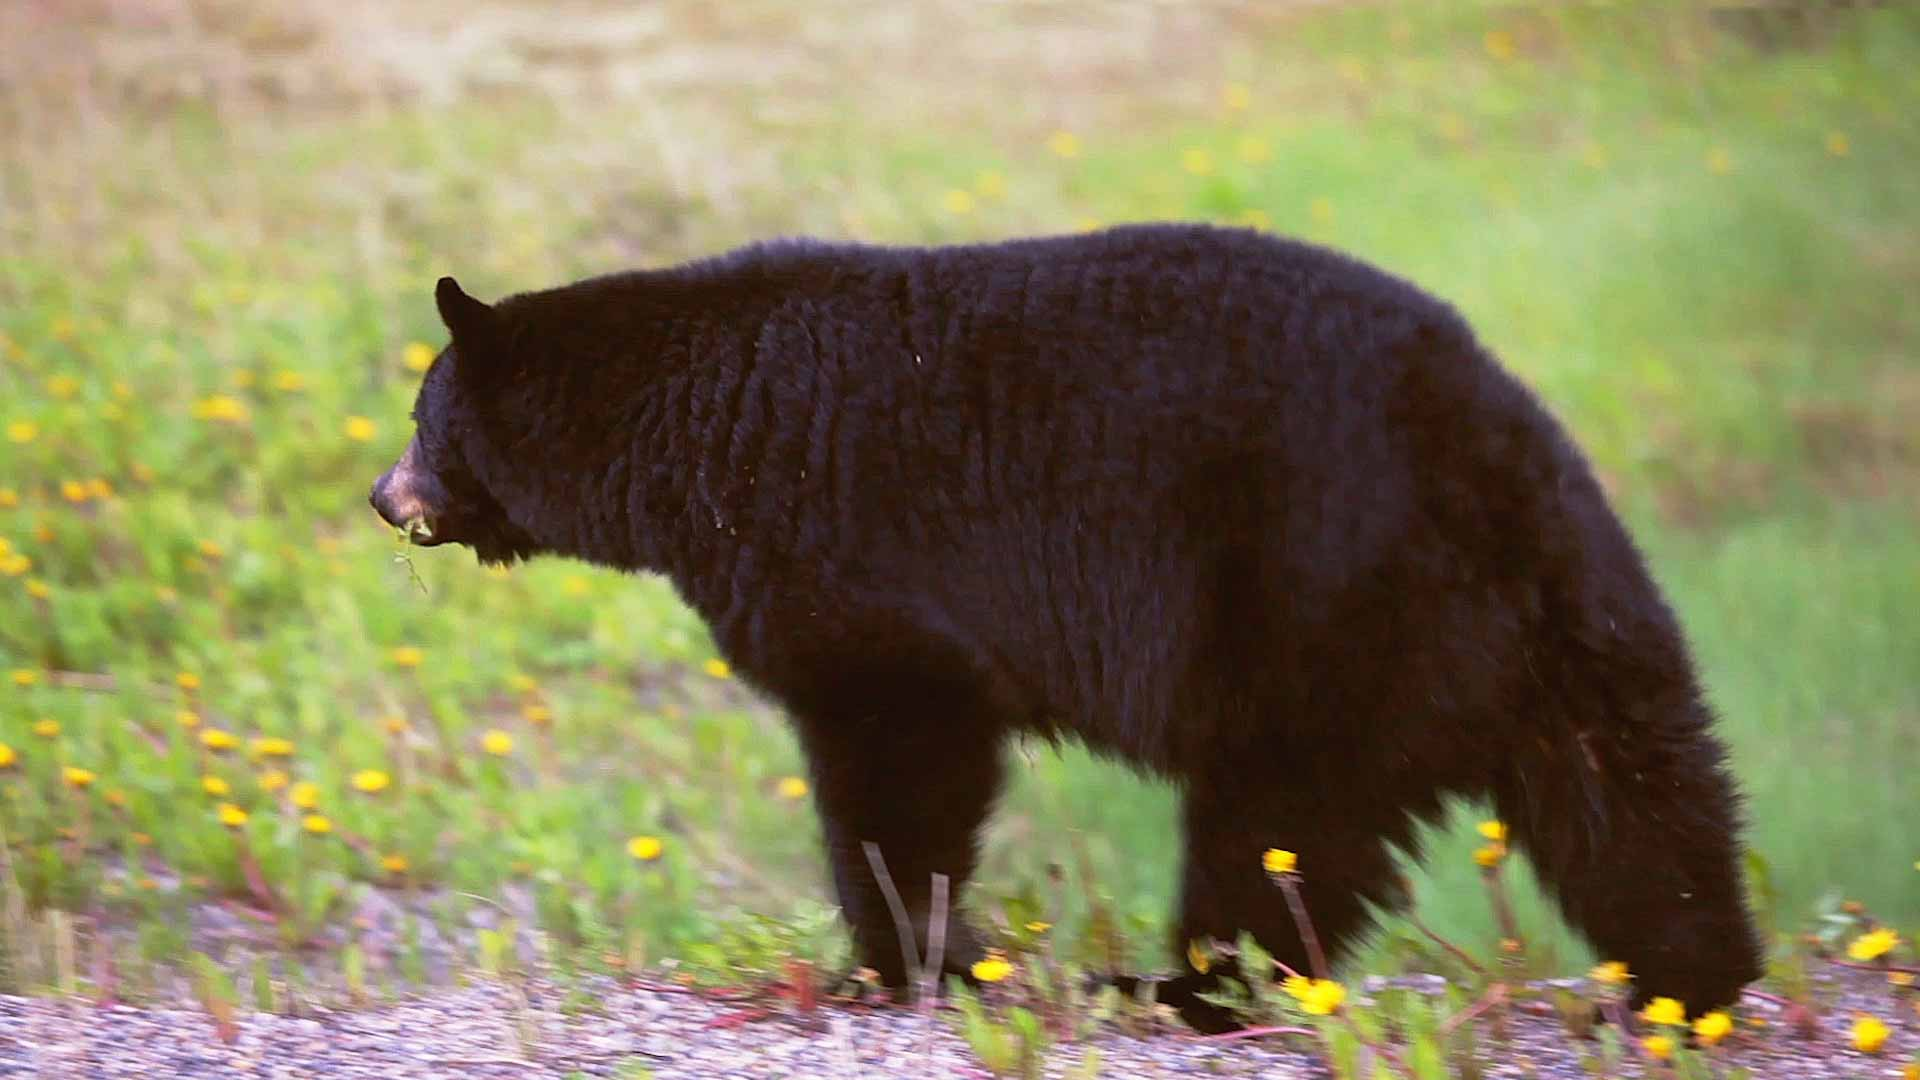 Black bear in Maine walking in field